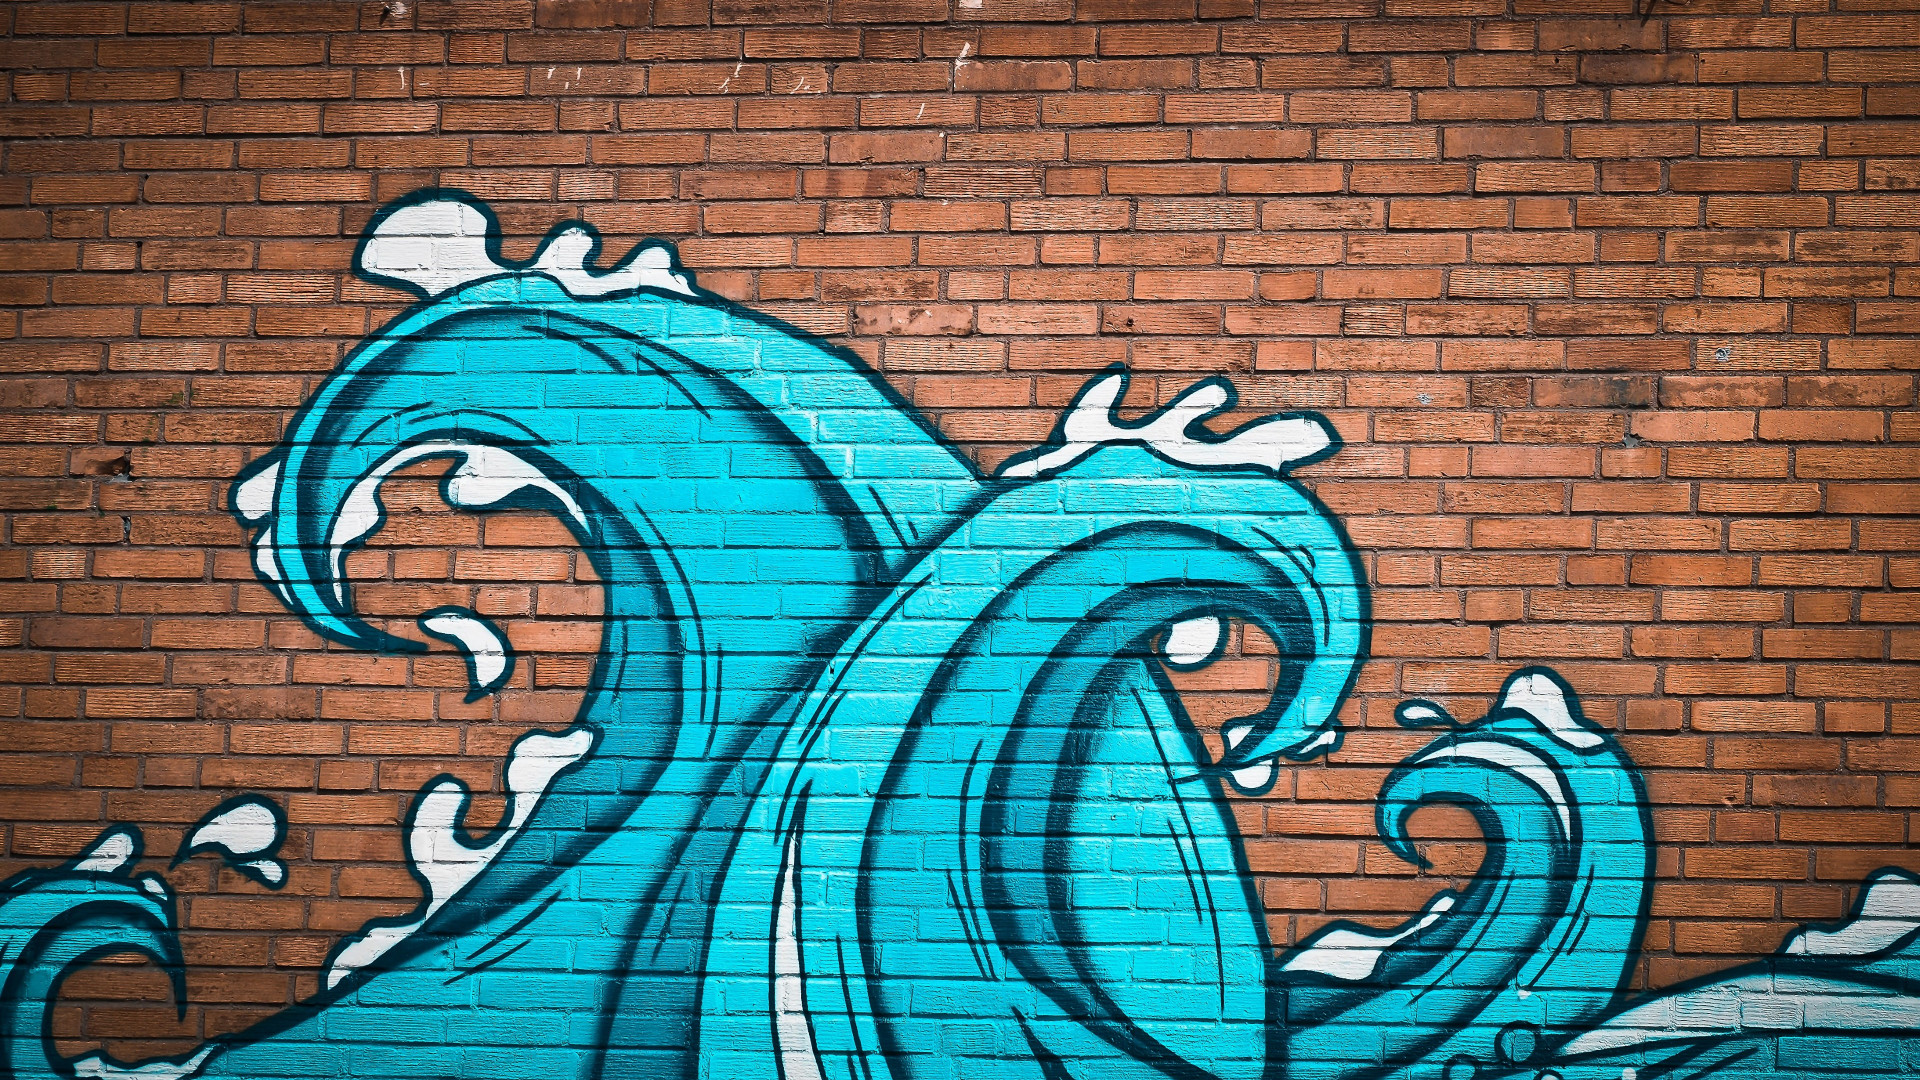 Graffiti waves on brick wall wallpaper 1920x1080